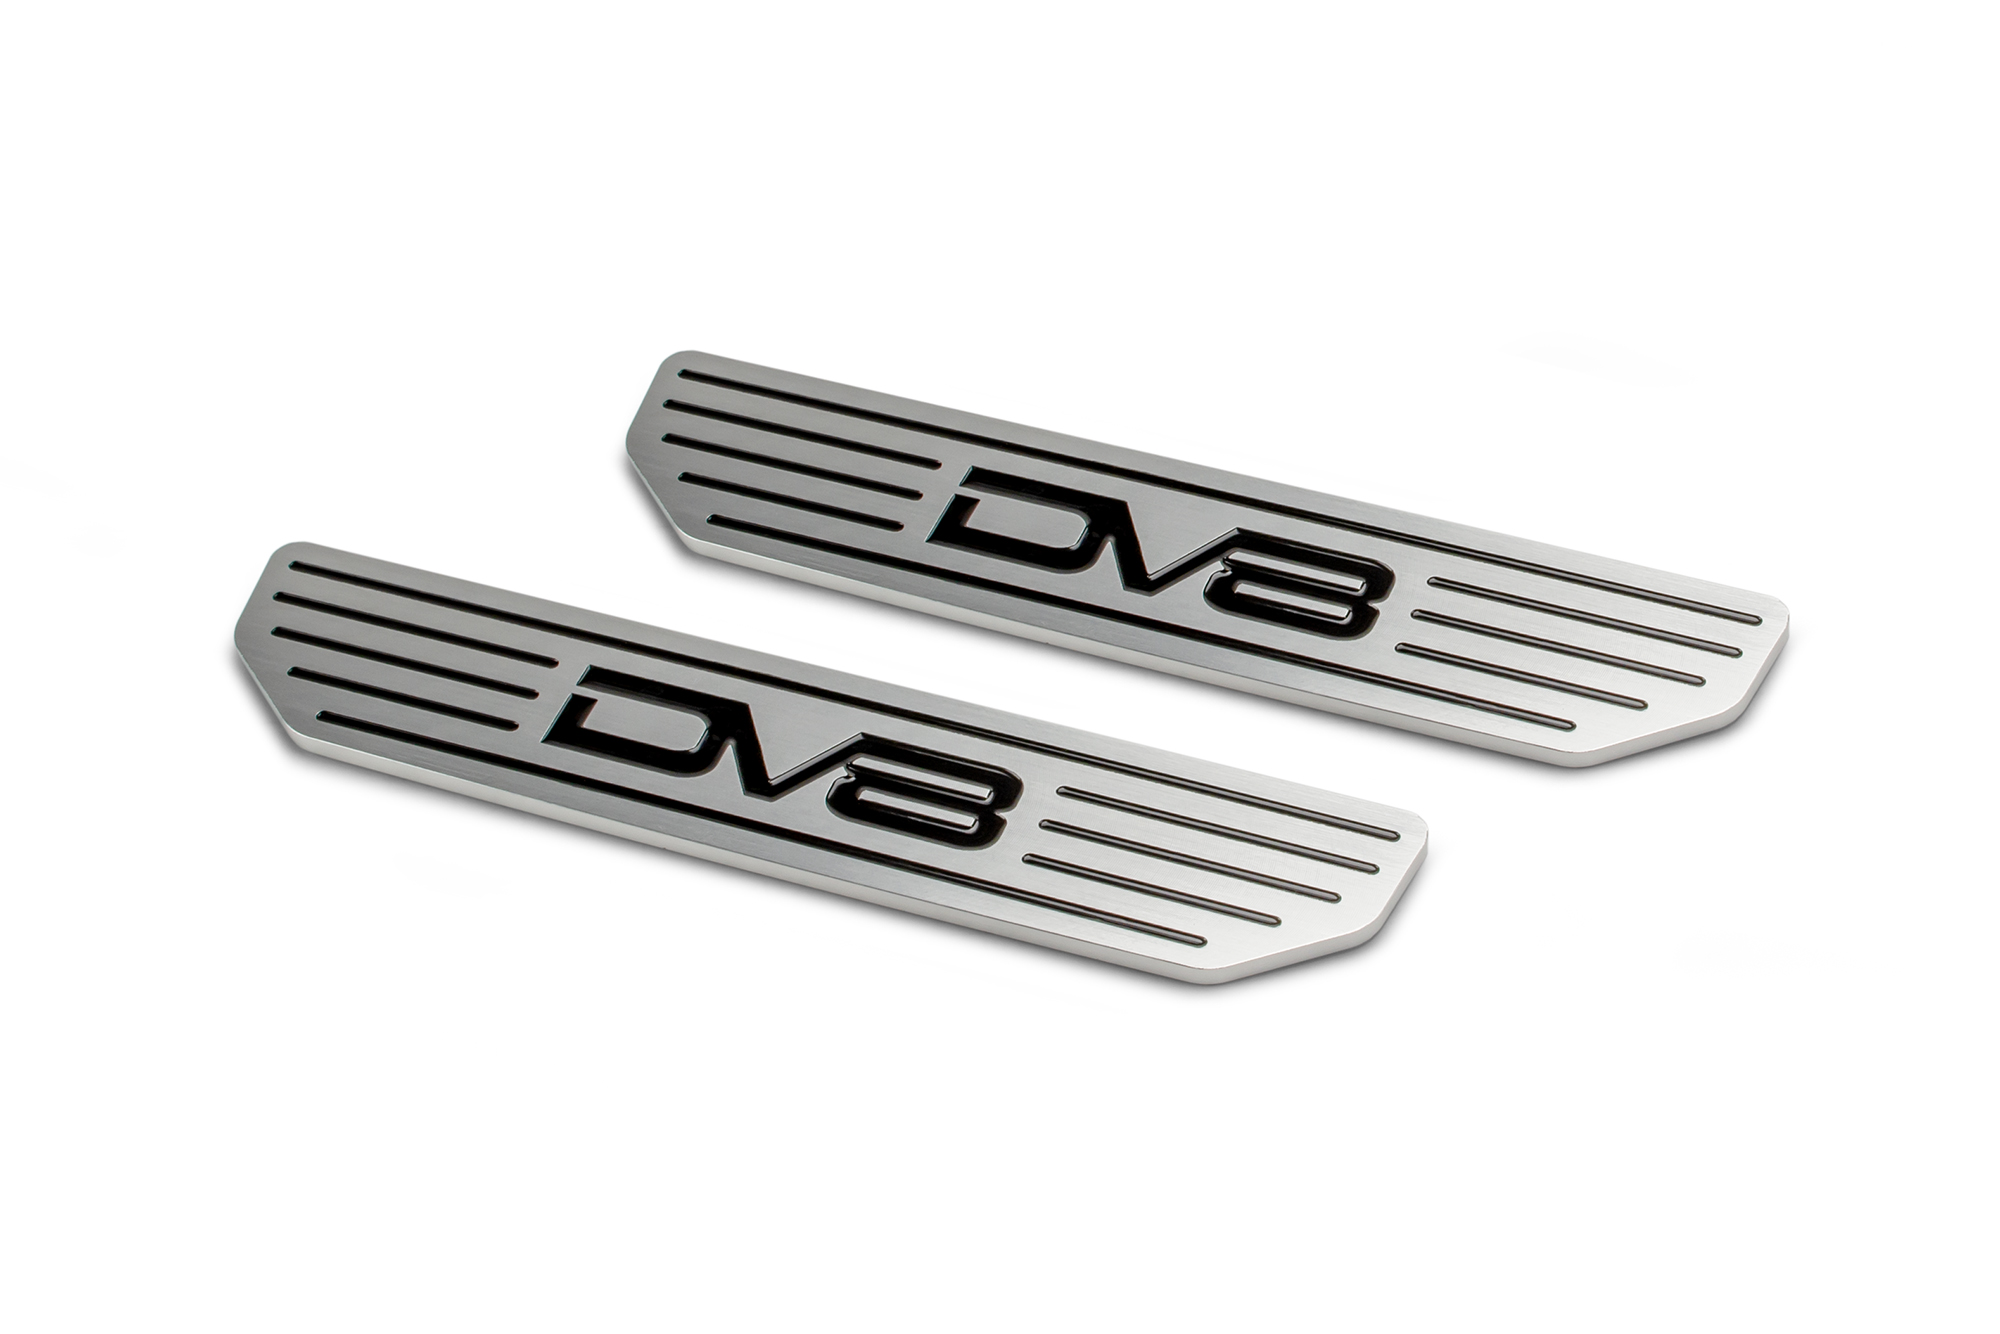 Jeep JL Front Sill Plates 18-Pres Wrangler JL with DV8 Logo 2/4 Door DV8 Offroad